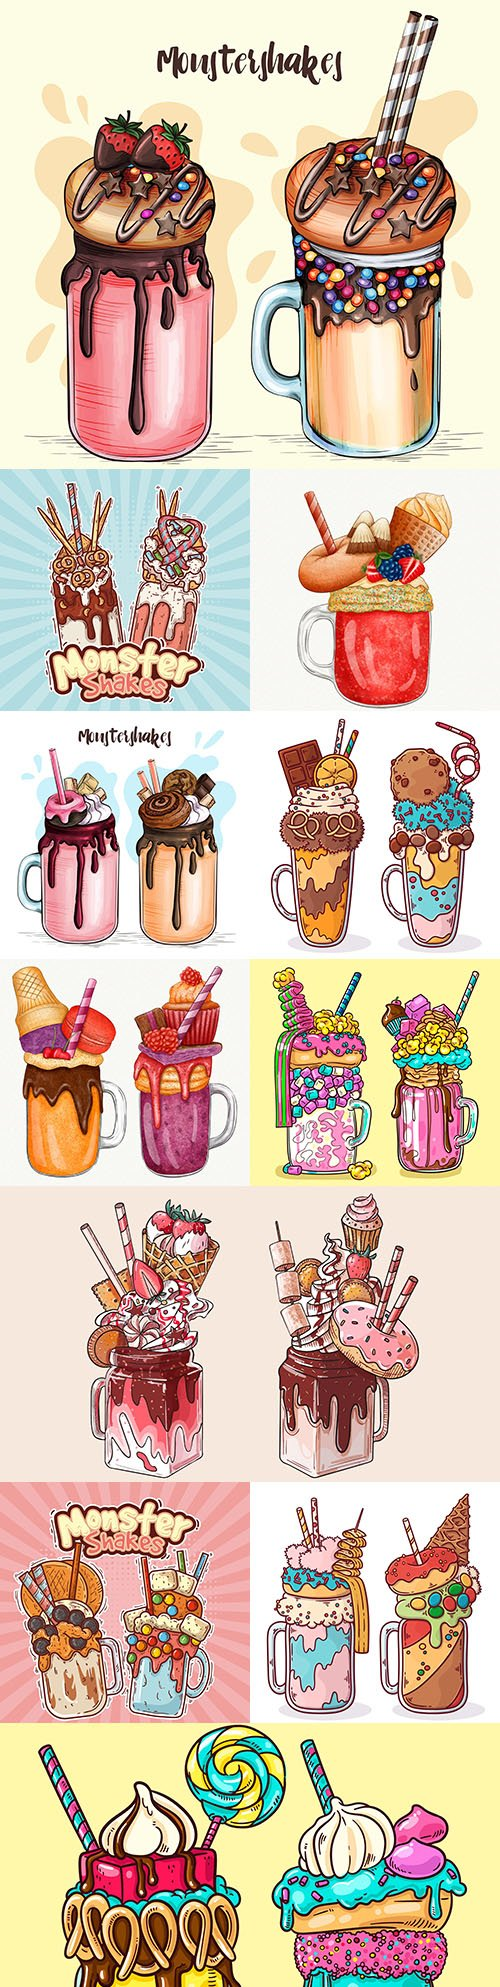 Tasty ice cream and monster shakes illustrations